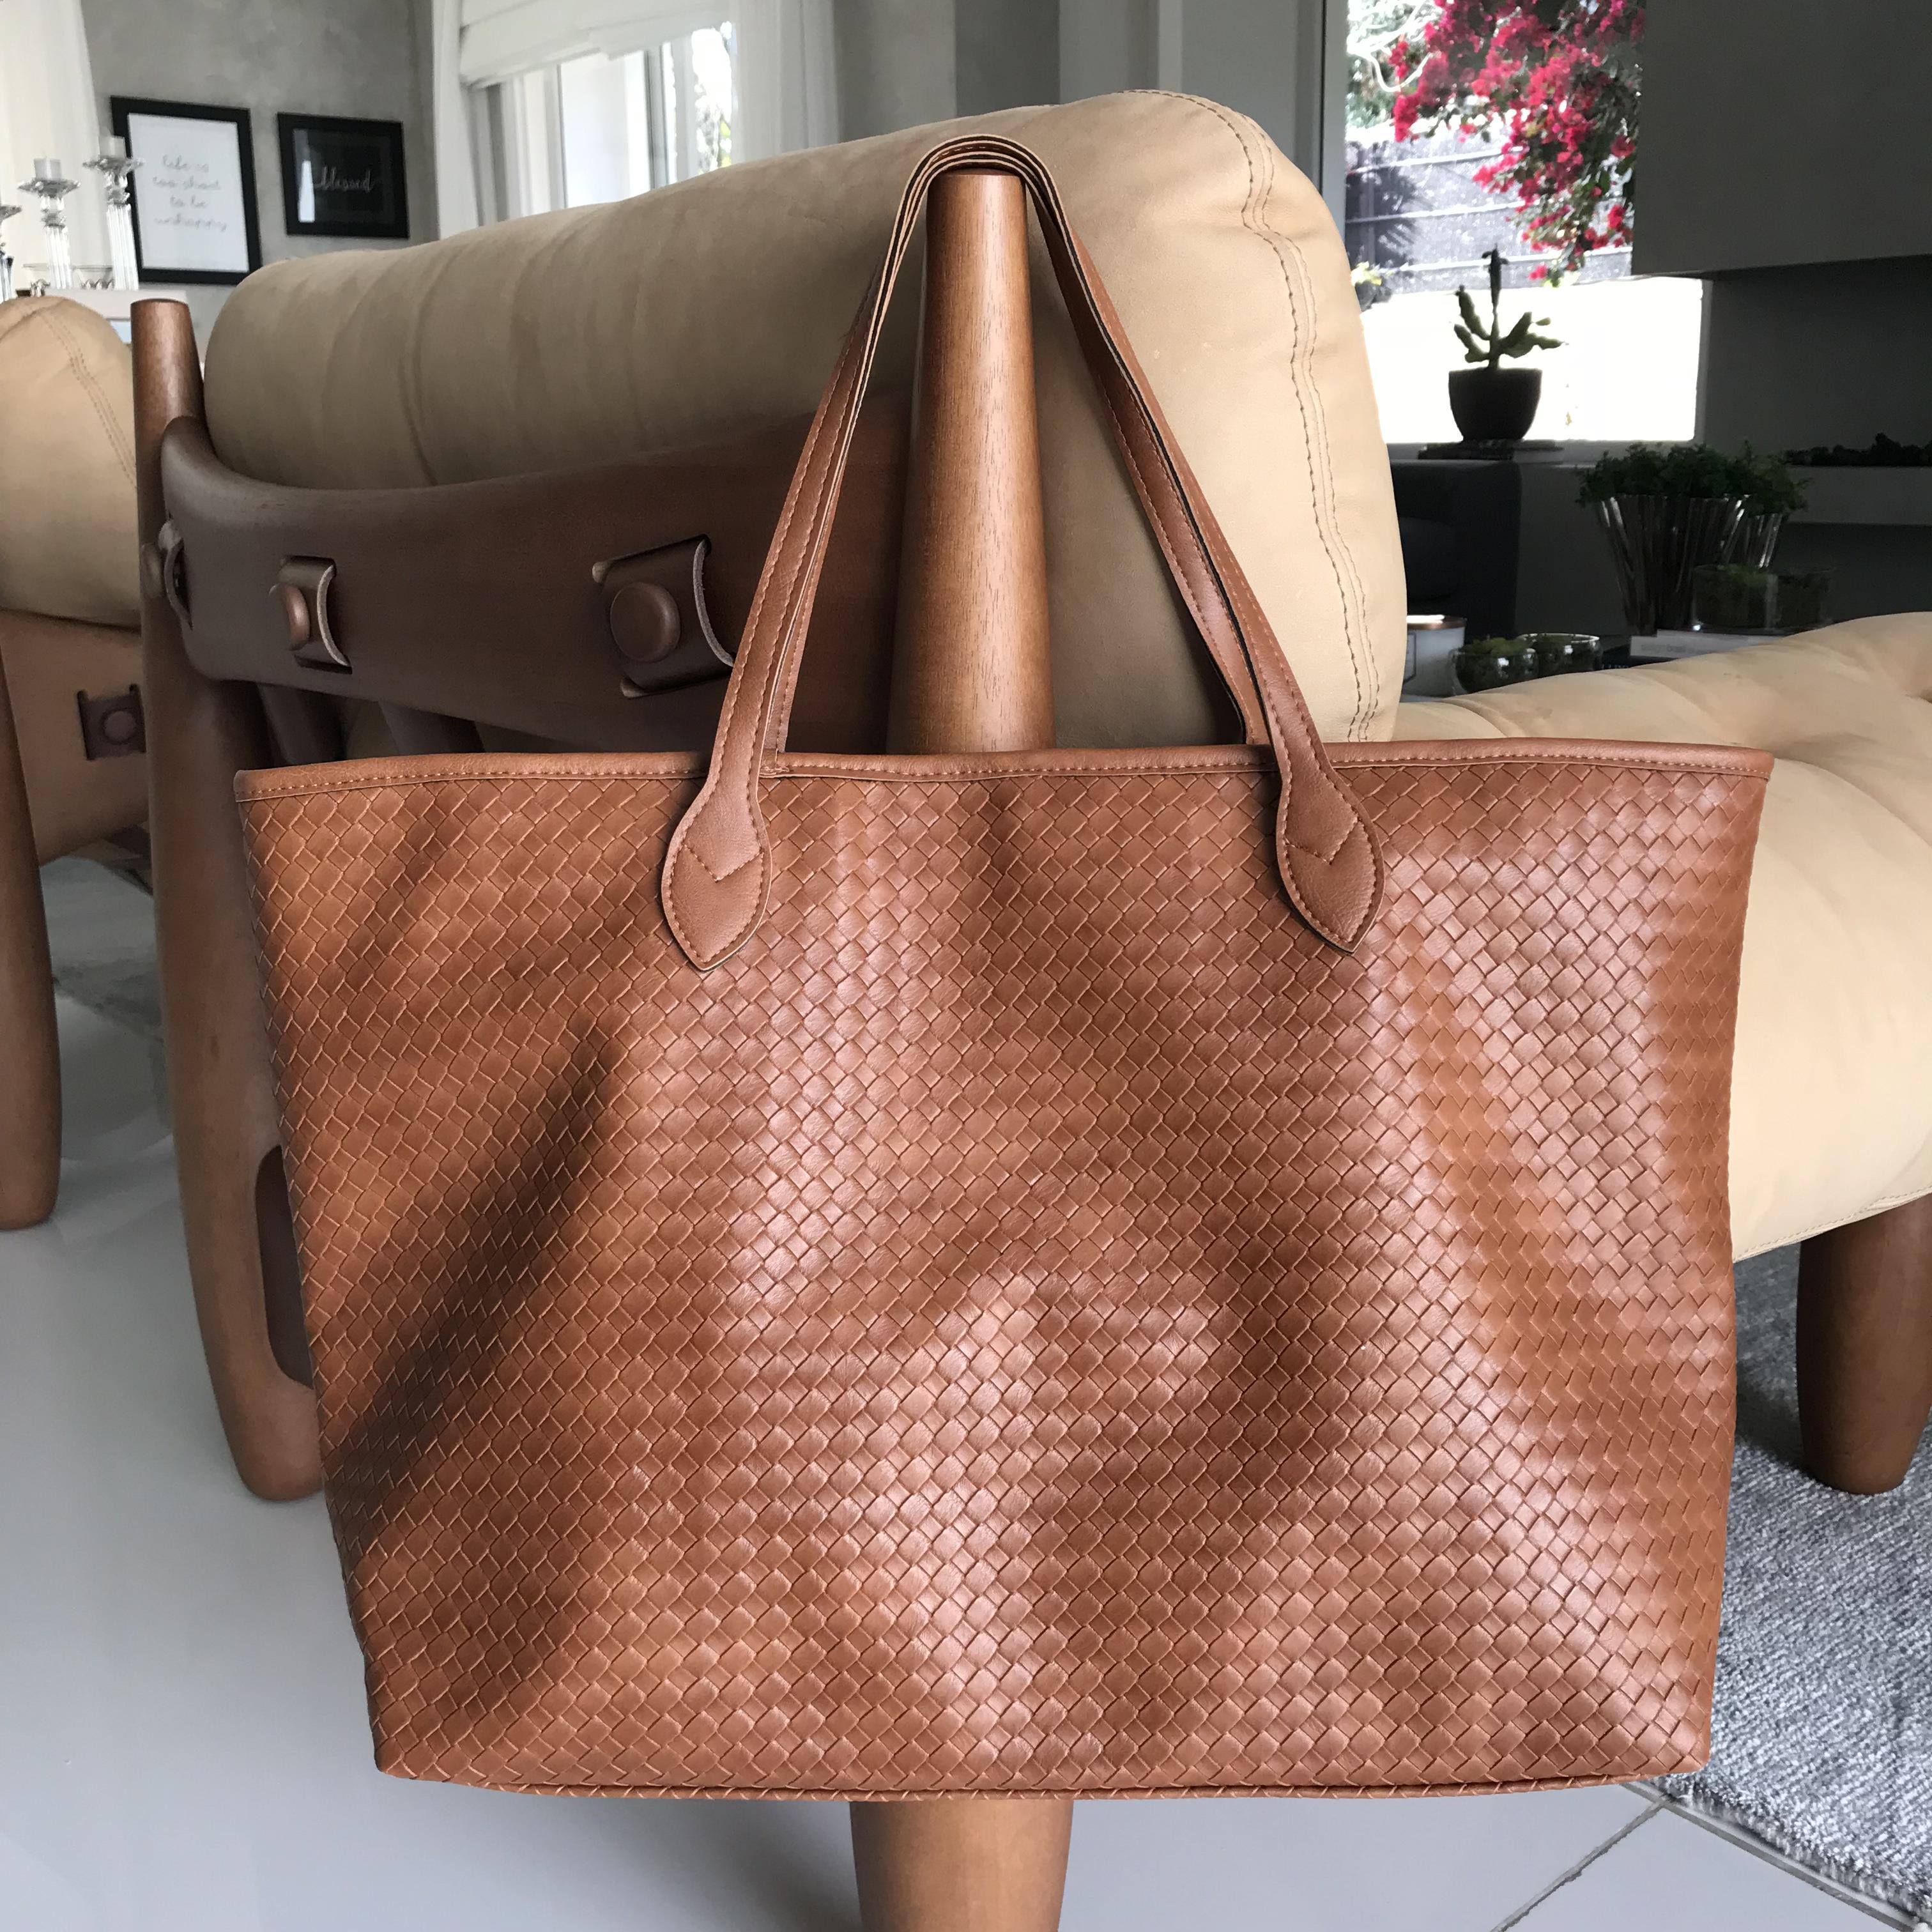 SHOPPING BAG CARAMELO